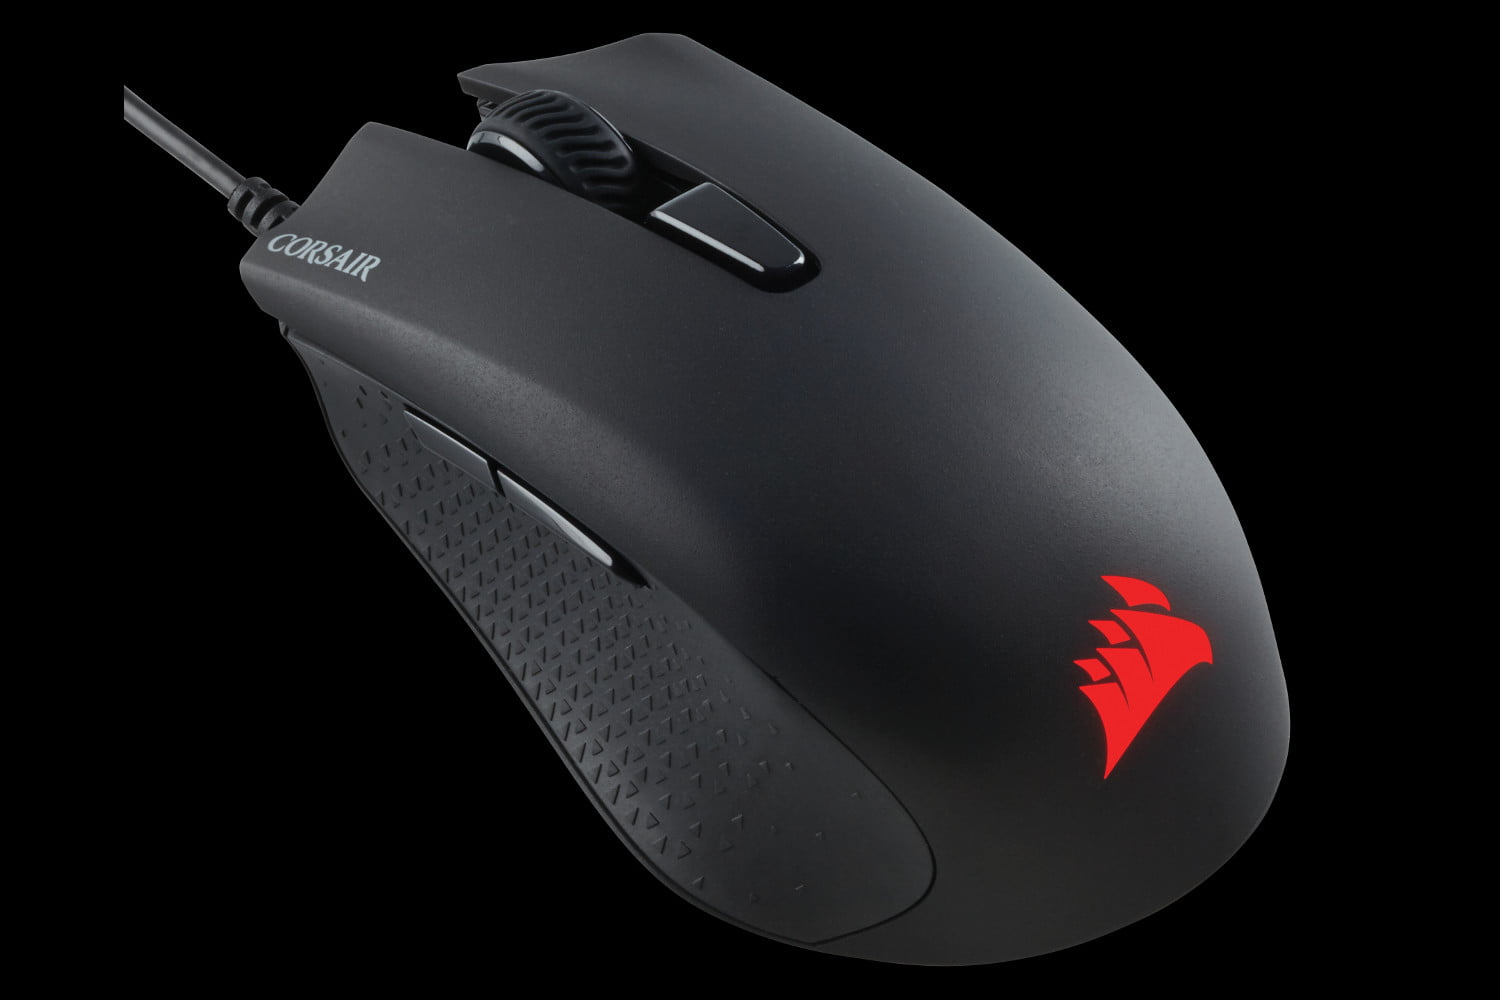 Corsair Targets FPS Gamers With the Harpoon RGB Mouse | Digital Trends